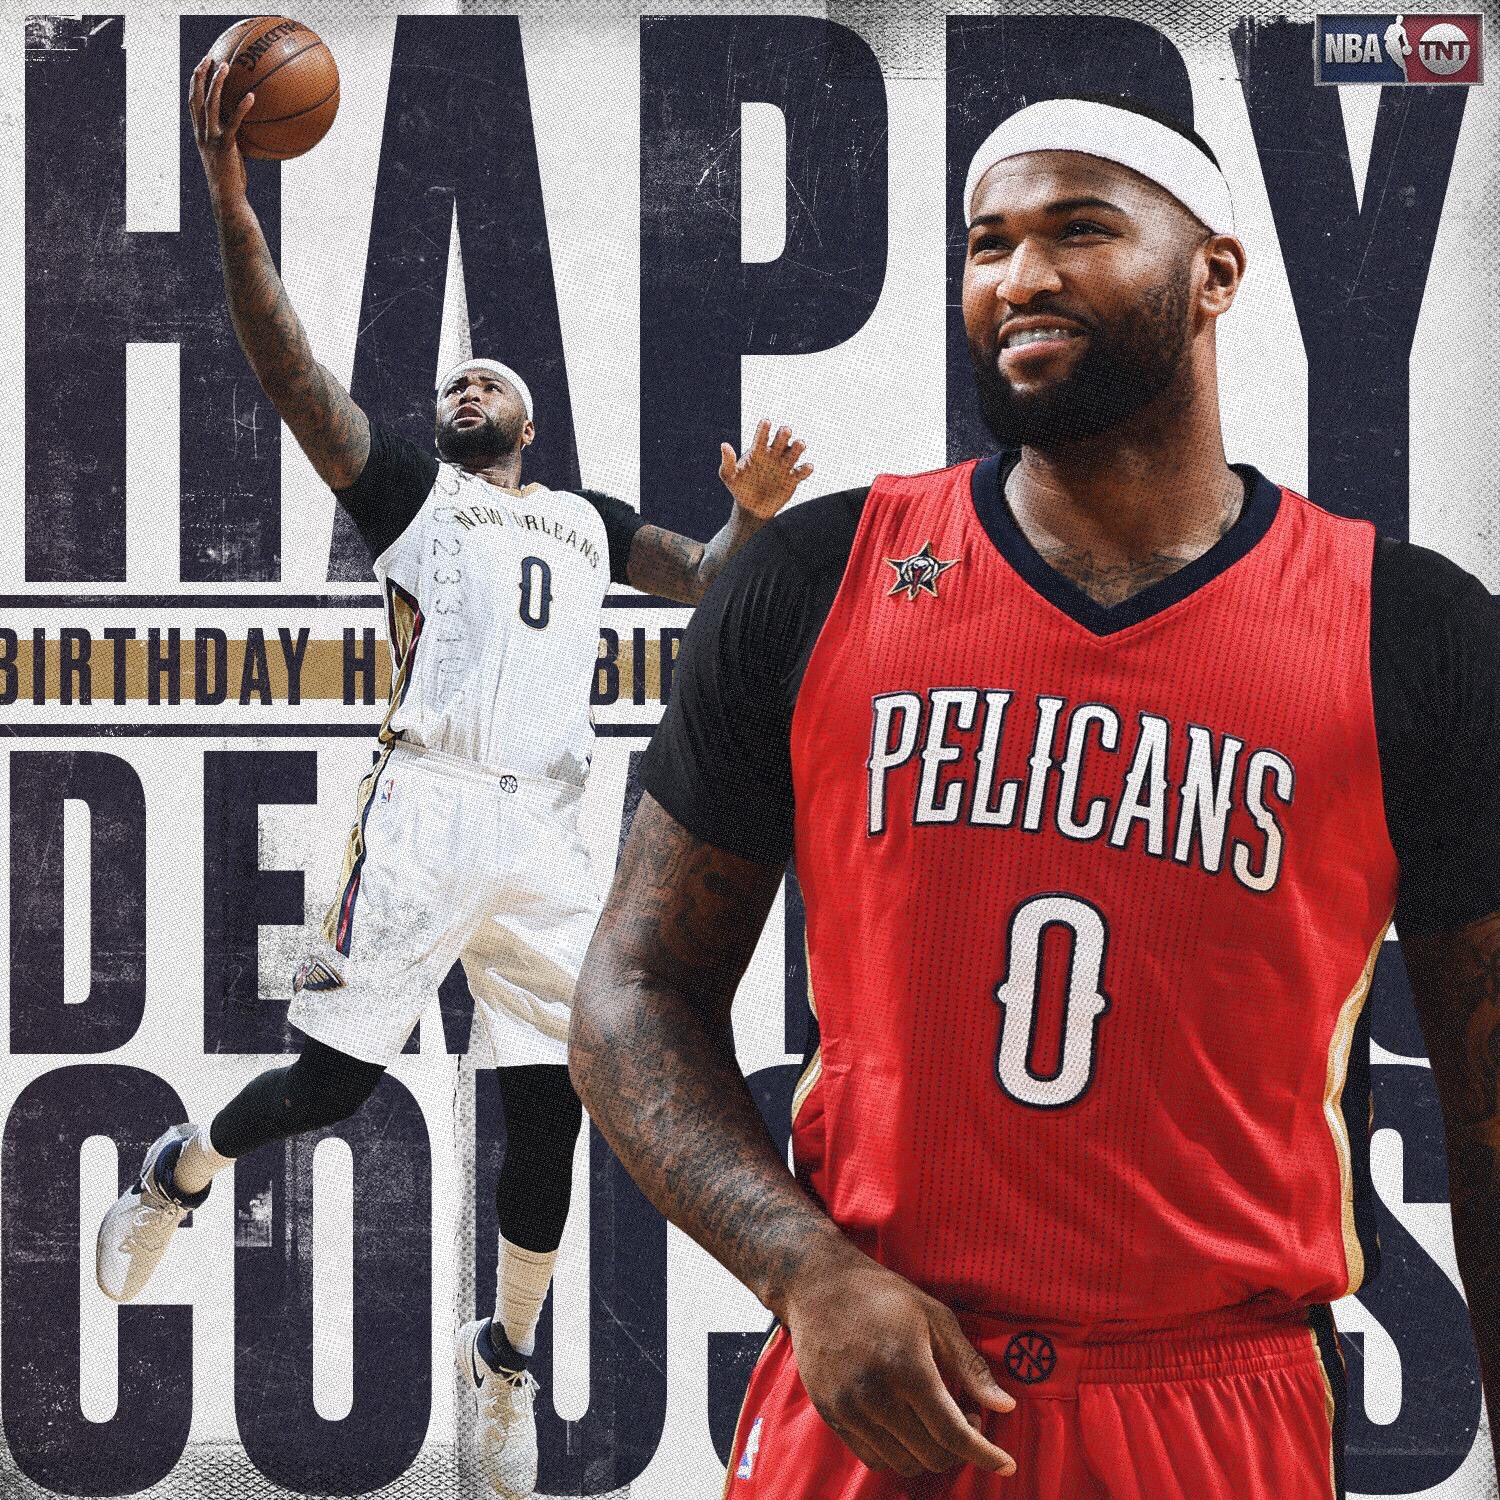 Happy Birthday to the 3-Time NBA All-Star, DeMarcus Cousins!